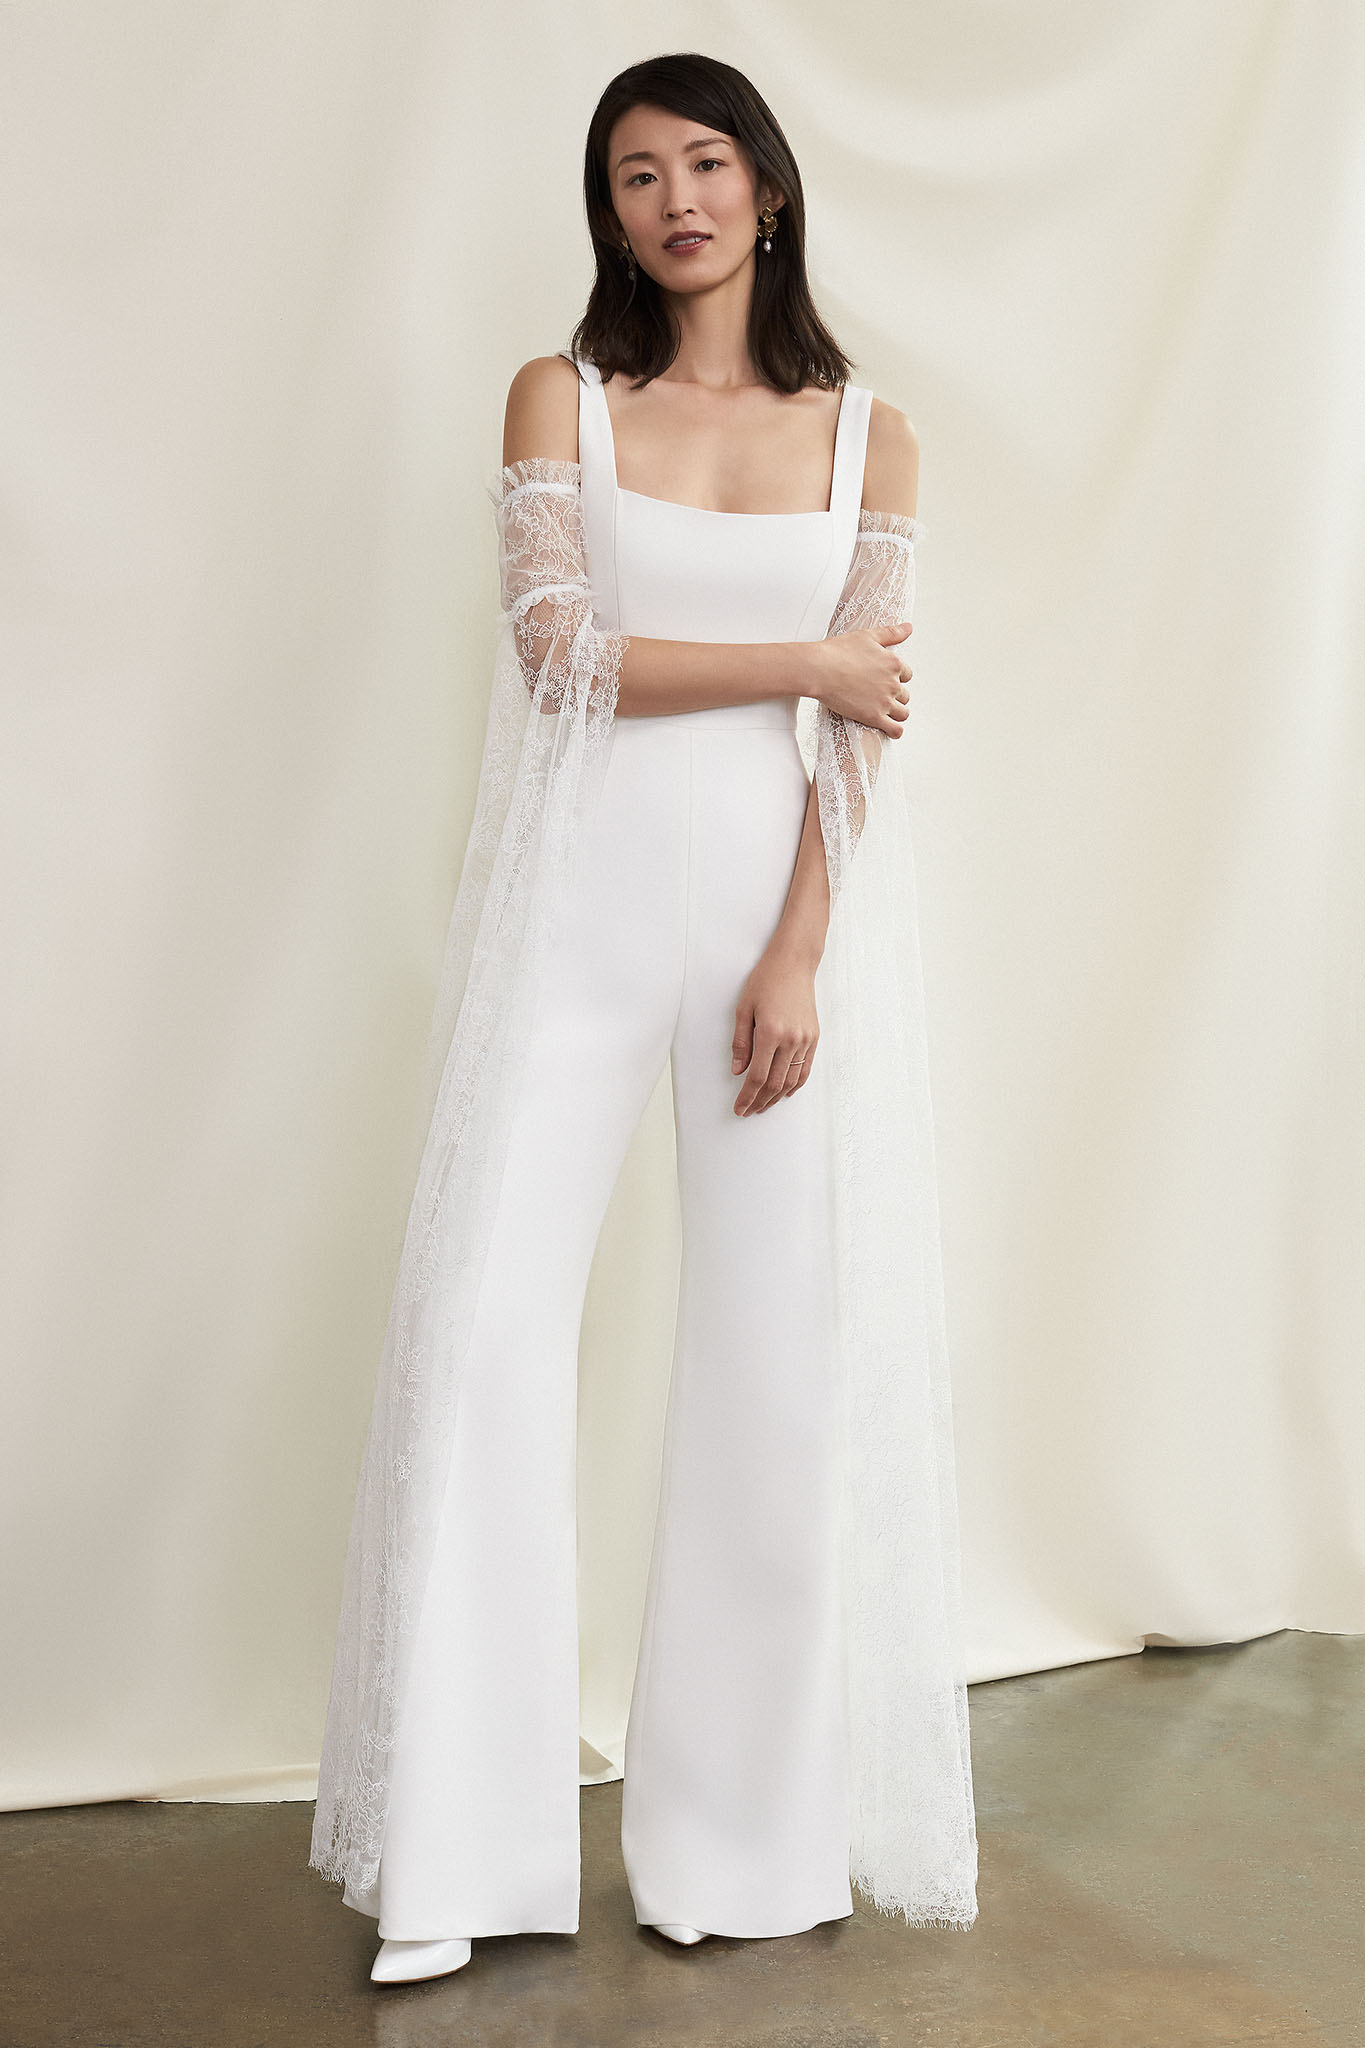 Savannah Miller Bridal Fall 2021